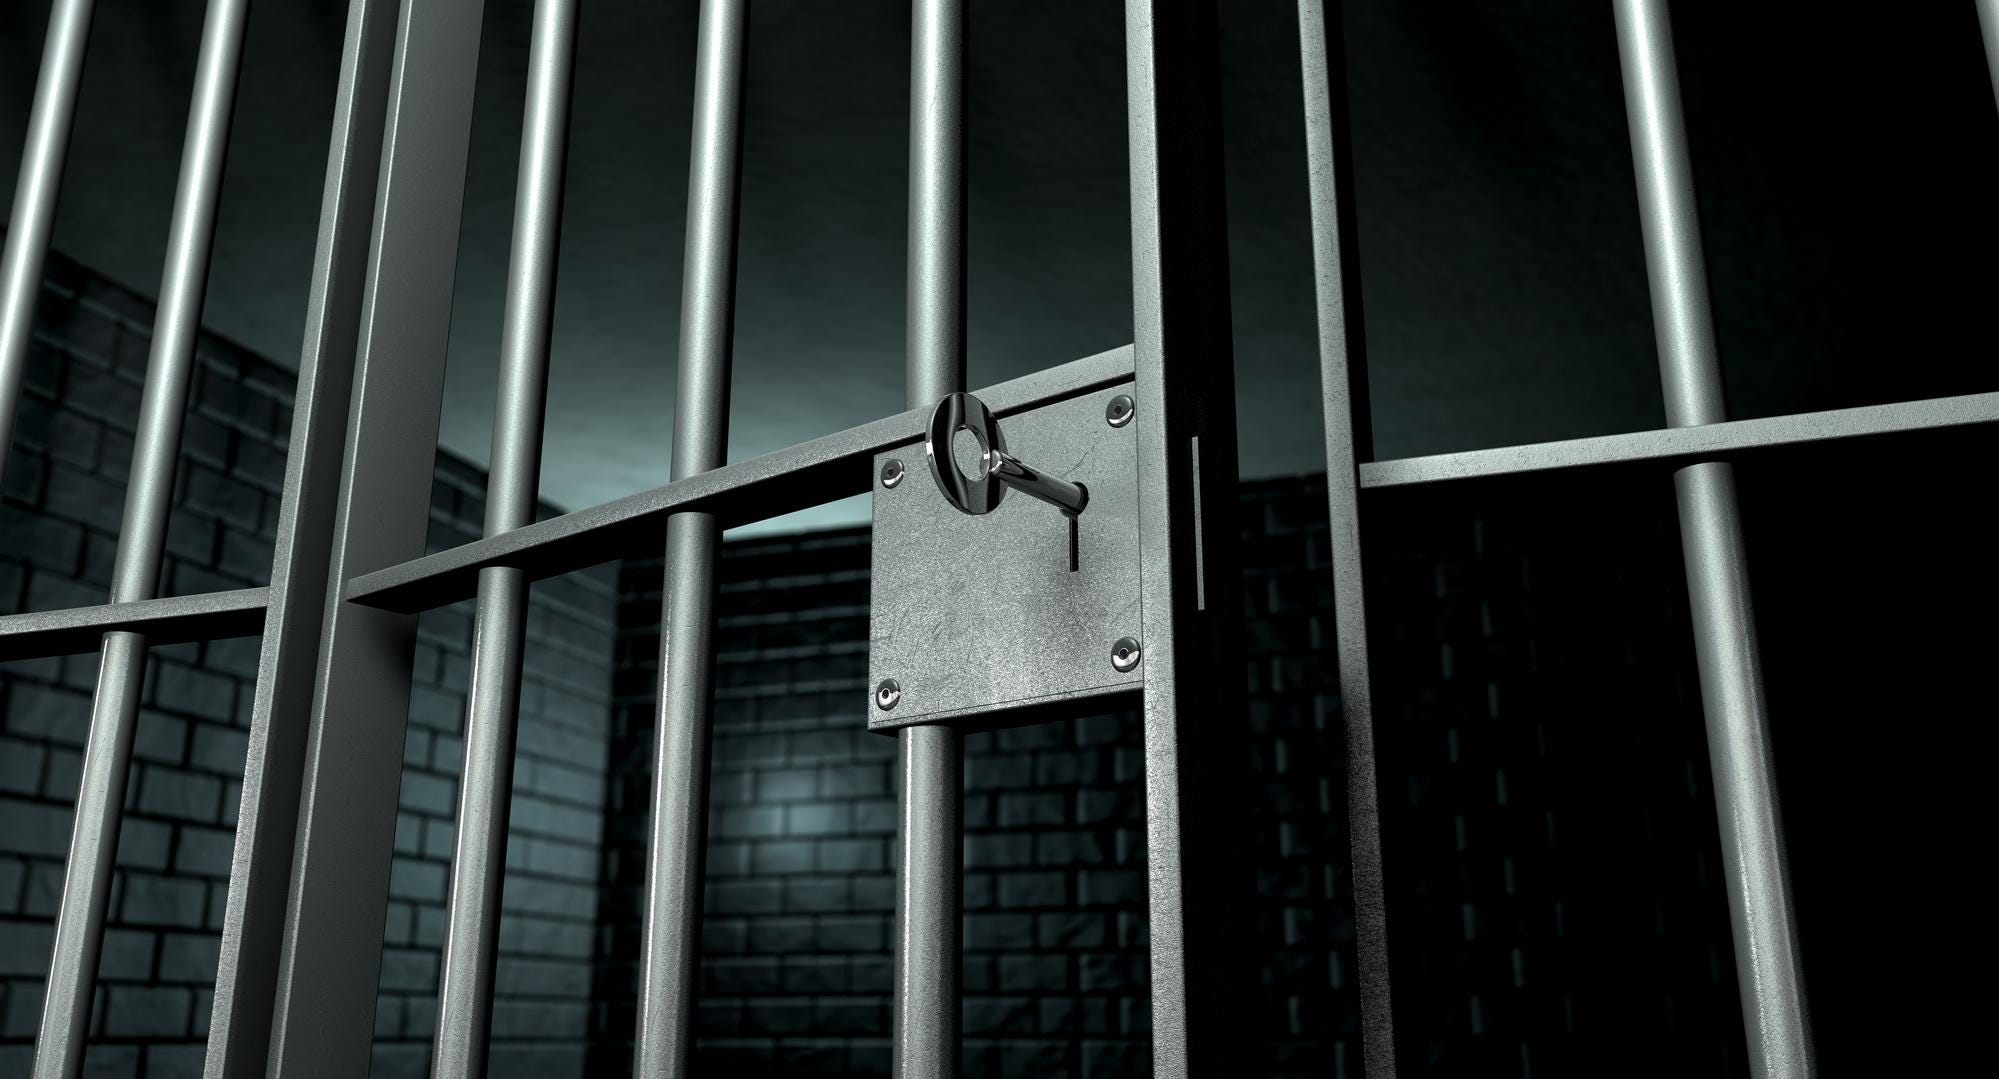 Federal judge: Coronavirus poses  grave danger  in jails, prisons;  swift  government action needed